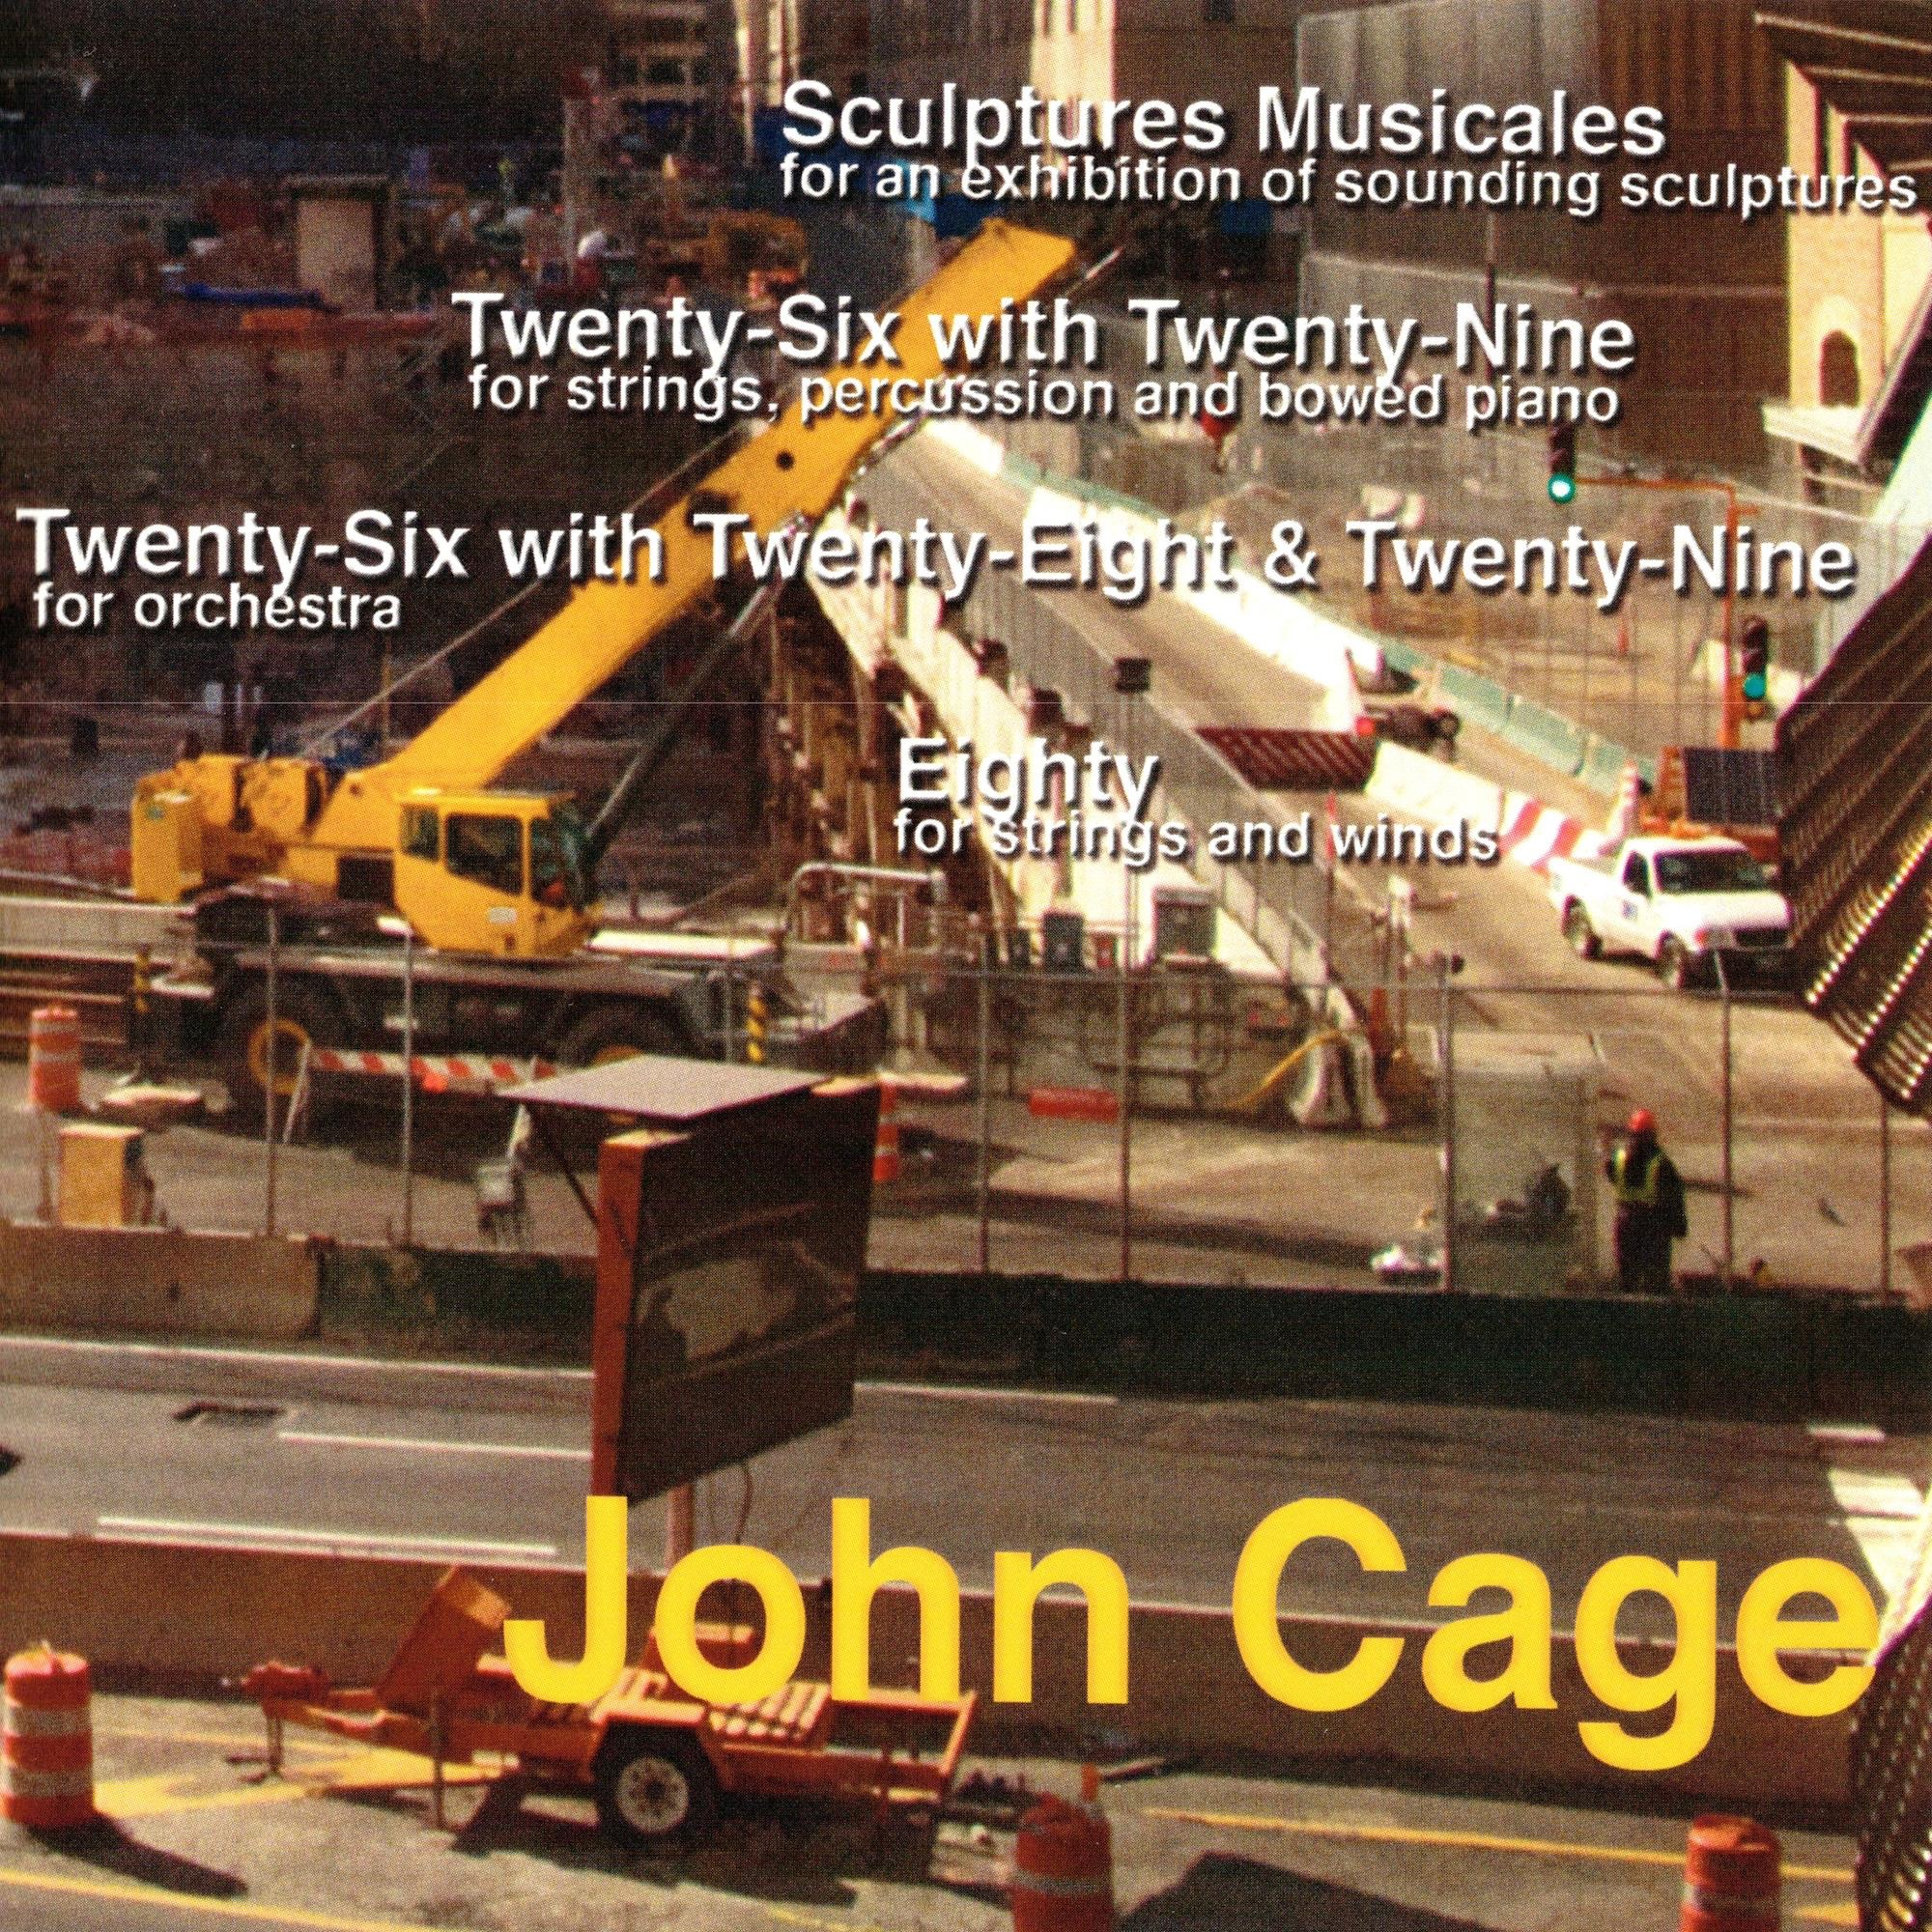 John Cage: Sculptures Musicales, Fifty-Five, Eighty-Three, Eighty - EP